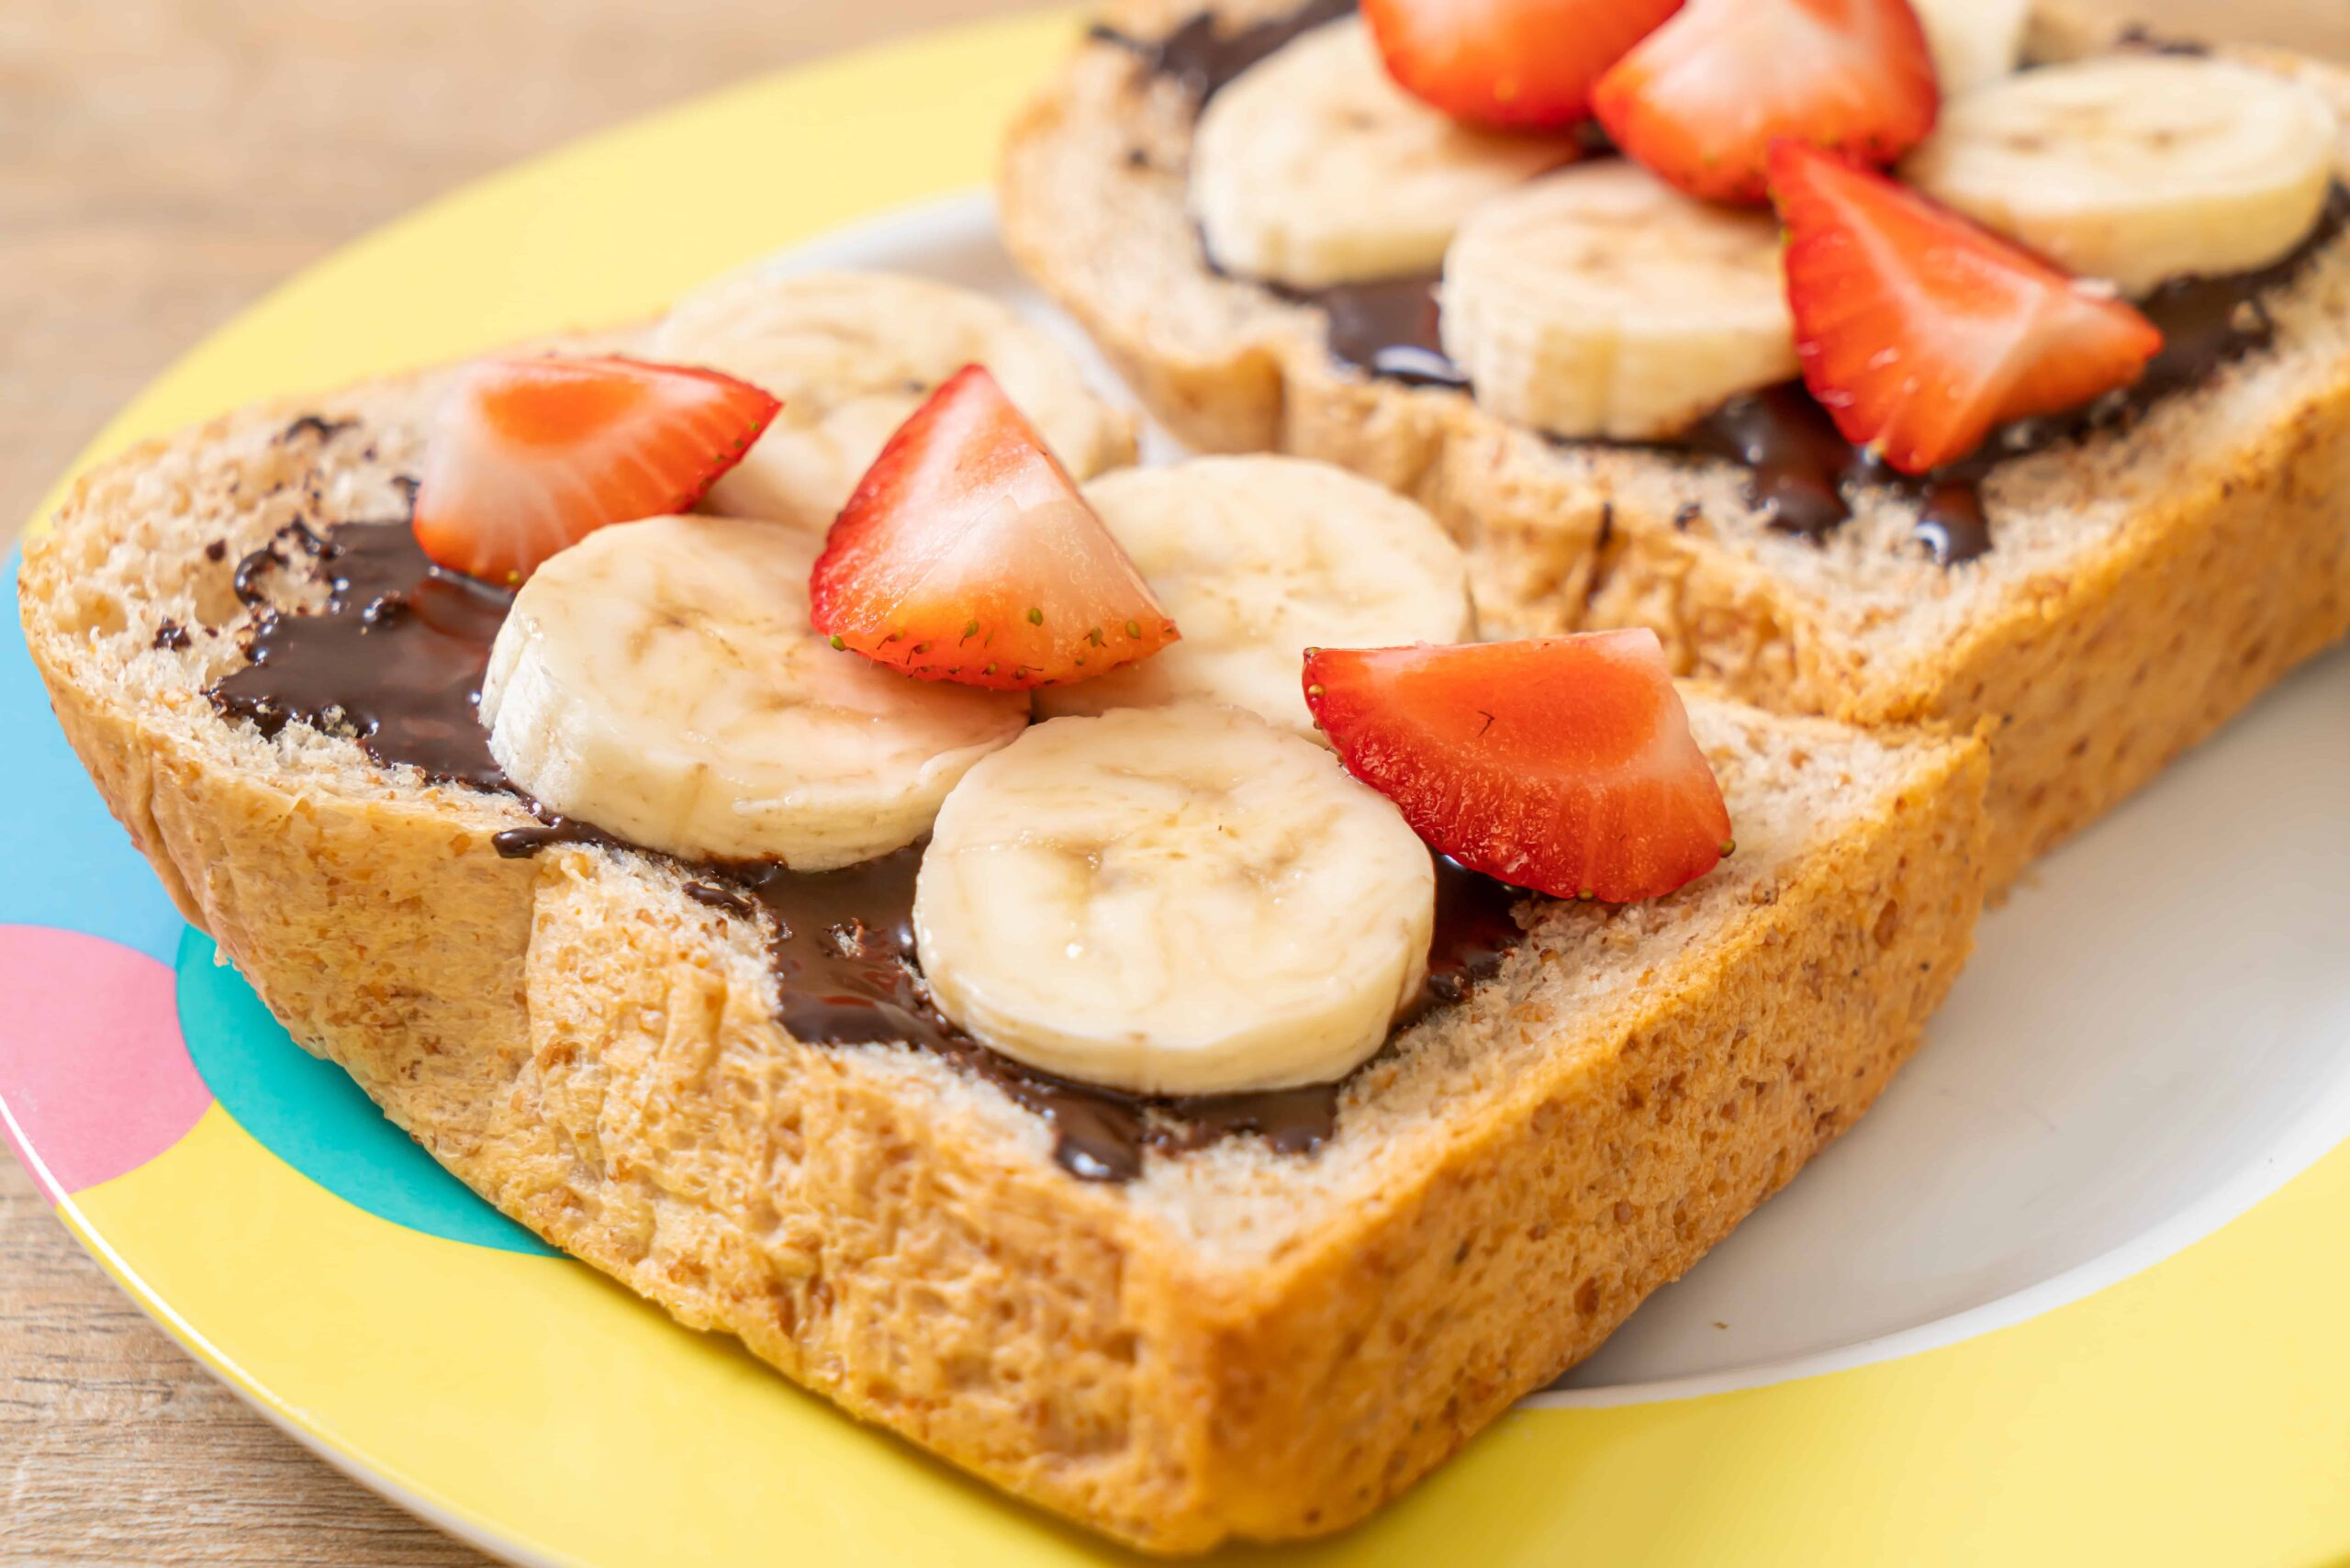 Nutella sandwich with Banana